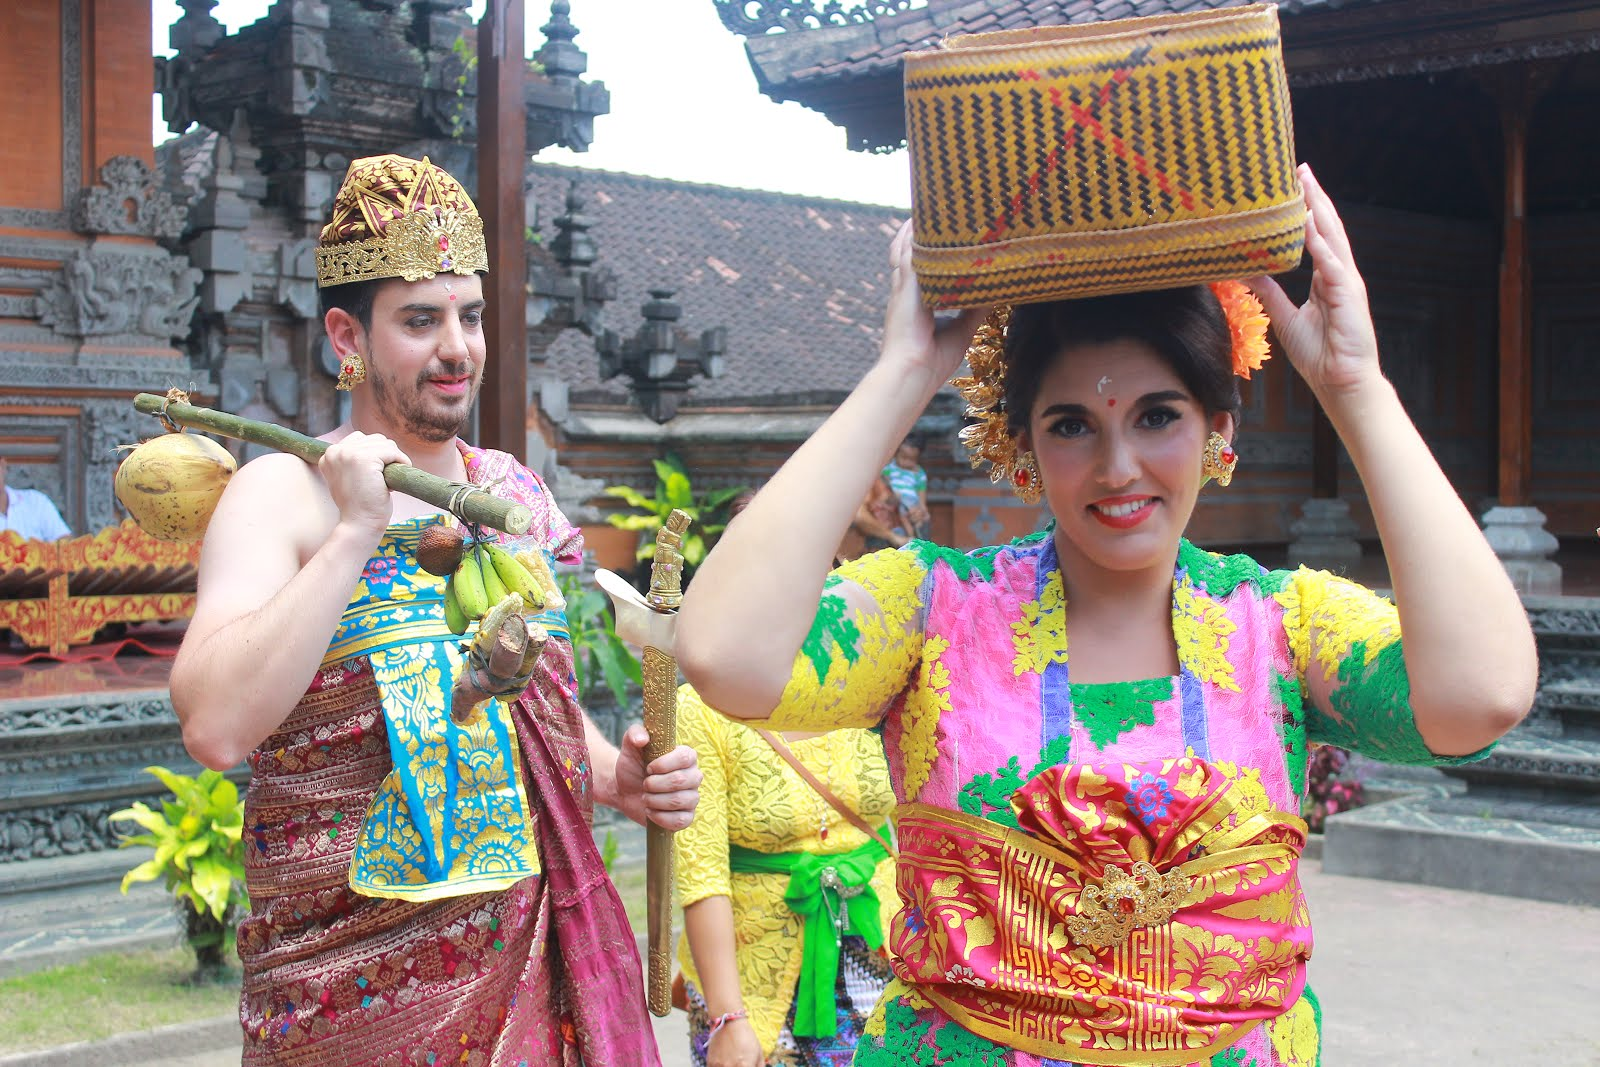 Balinese Ceremonial Wedding Photography